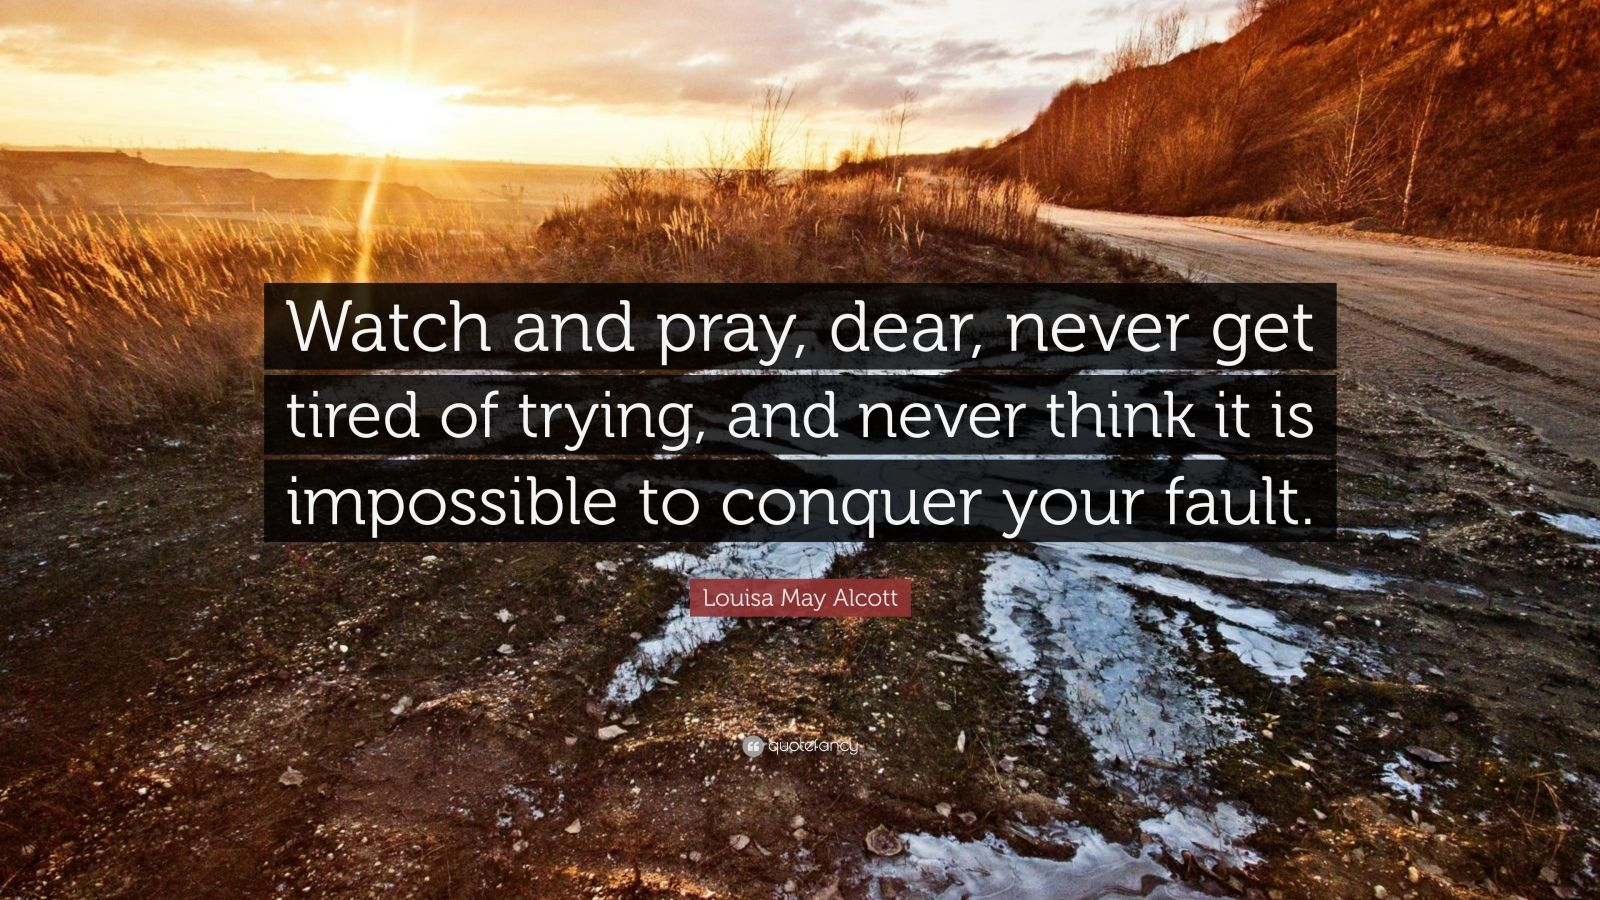 """Louisa May Alcott Quote: """"Watch and pray, dear, never get tired of trying, and never think it is impossible to conquer your fault."""""""